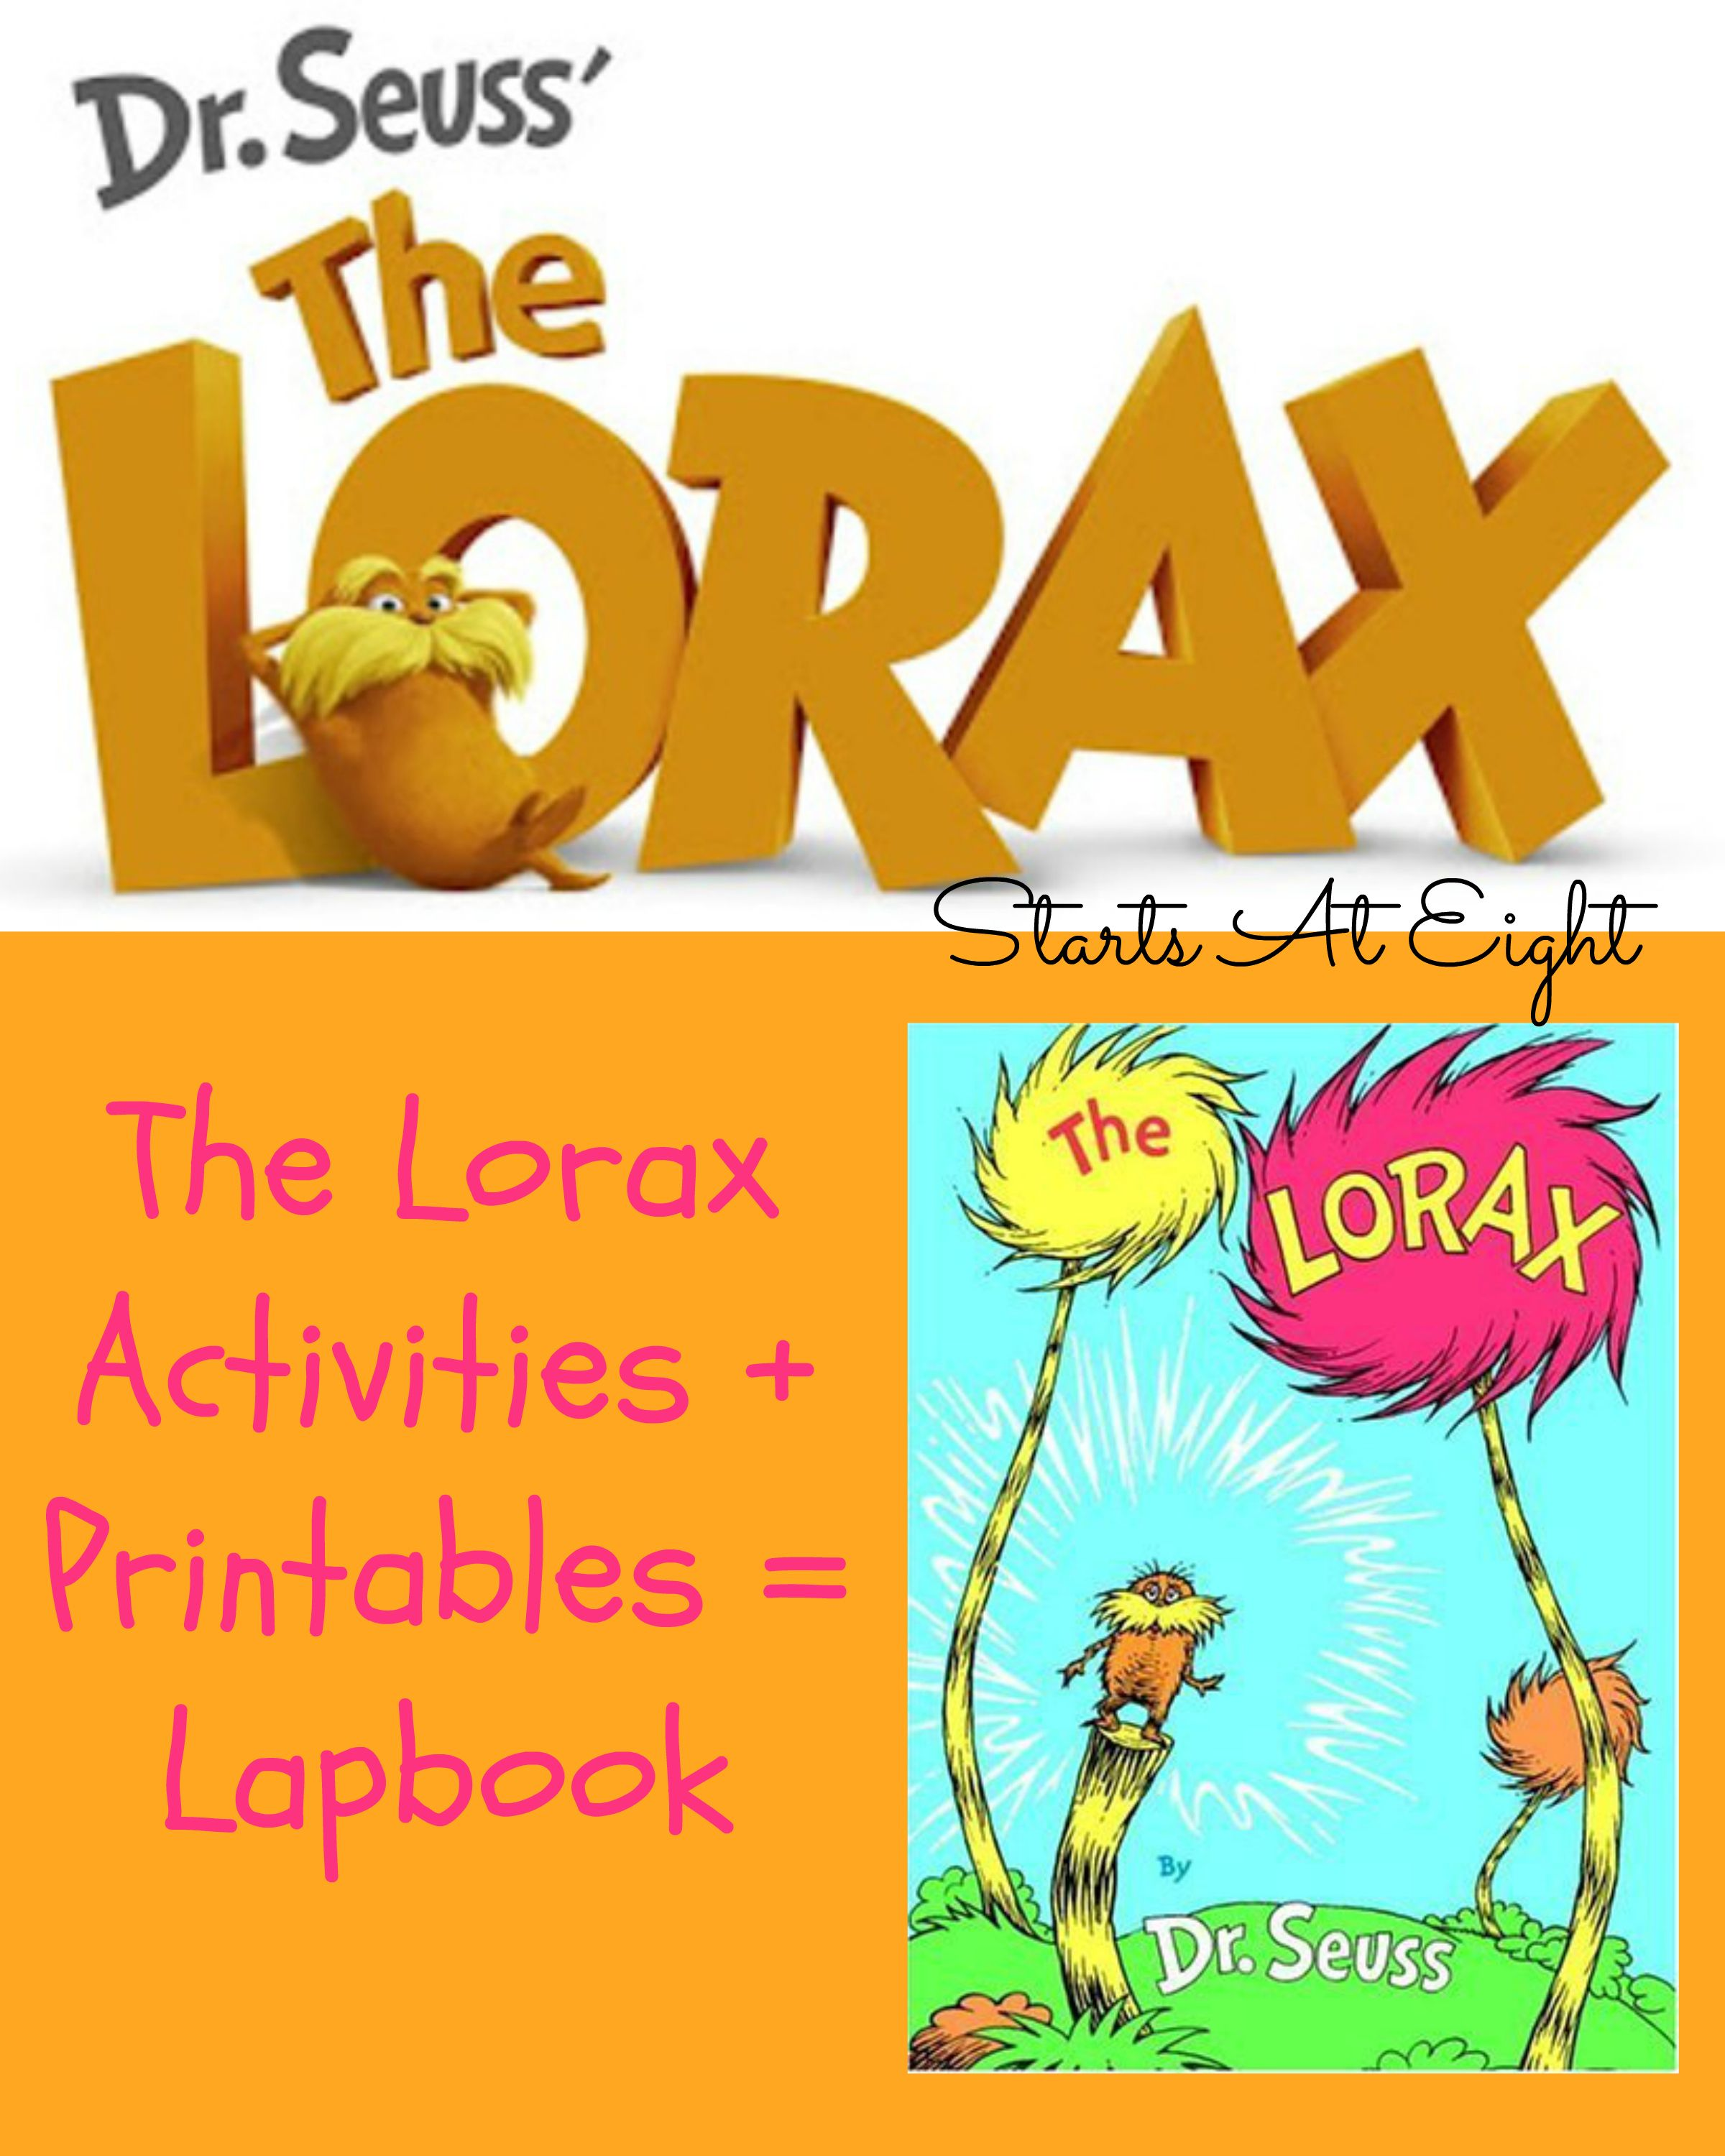 The Lorax Activites Printables Lapbook